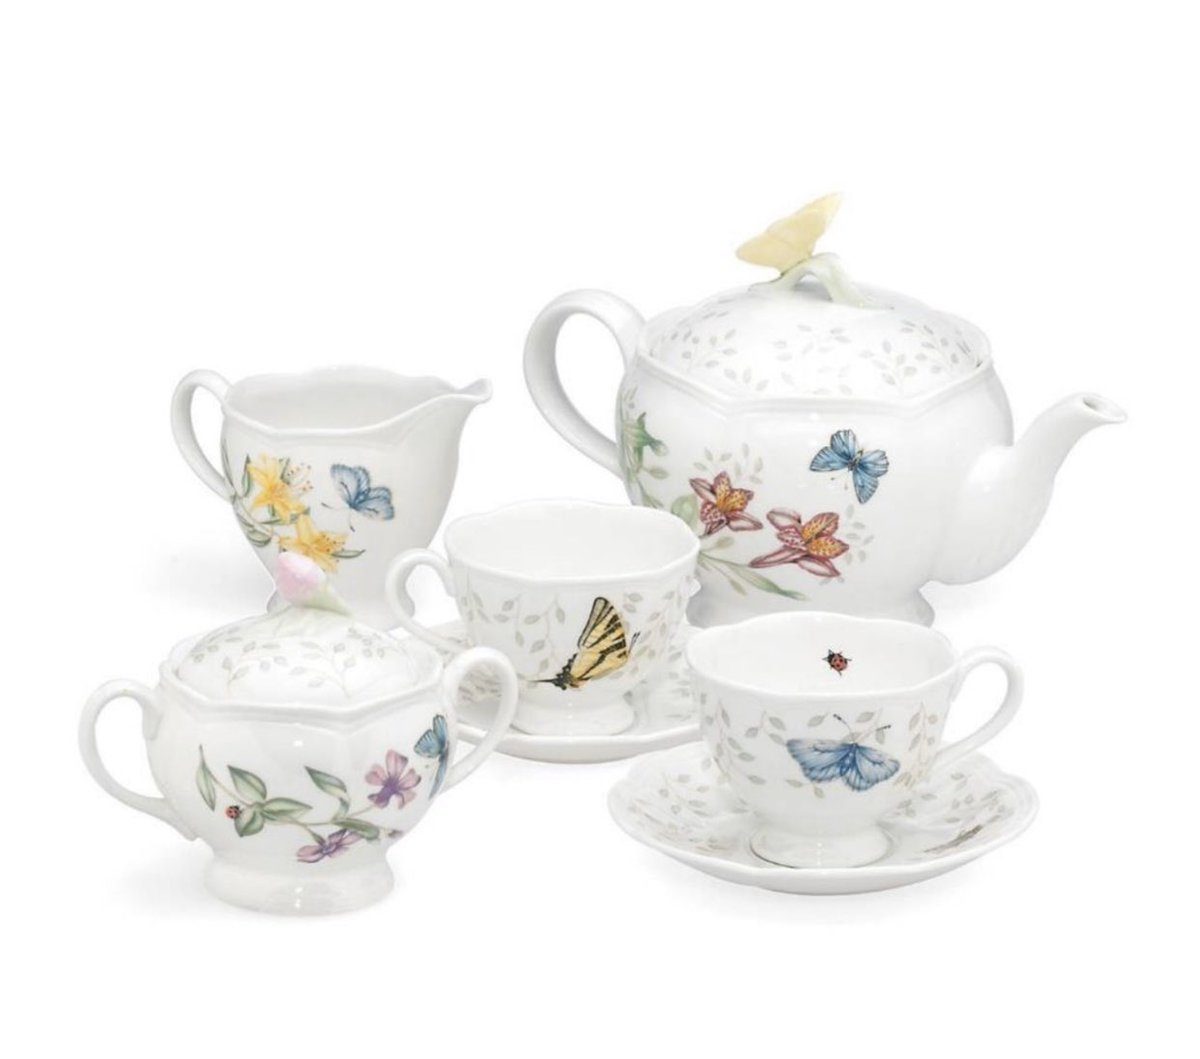 """""""Enjoy the beautiful tradition of serving tea with these lovely cups and saucers, matching teapot, and sugar and creamer set from LENOX. Microwave and dishwasher safe."""" #Lenox #butterflymeadow #teaset #Jashanmal #Bahrainpic.twitter.com/5gRk64IVEn"""